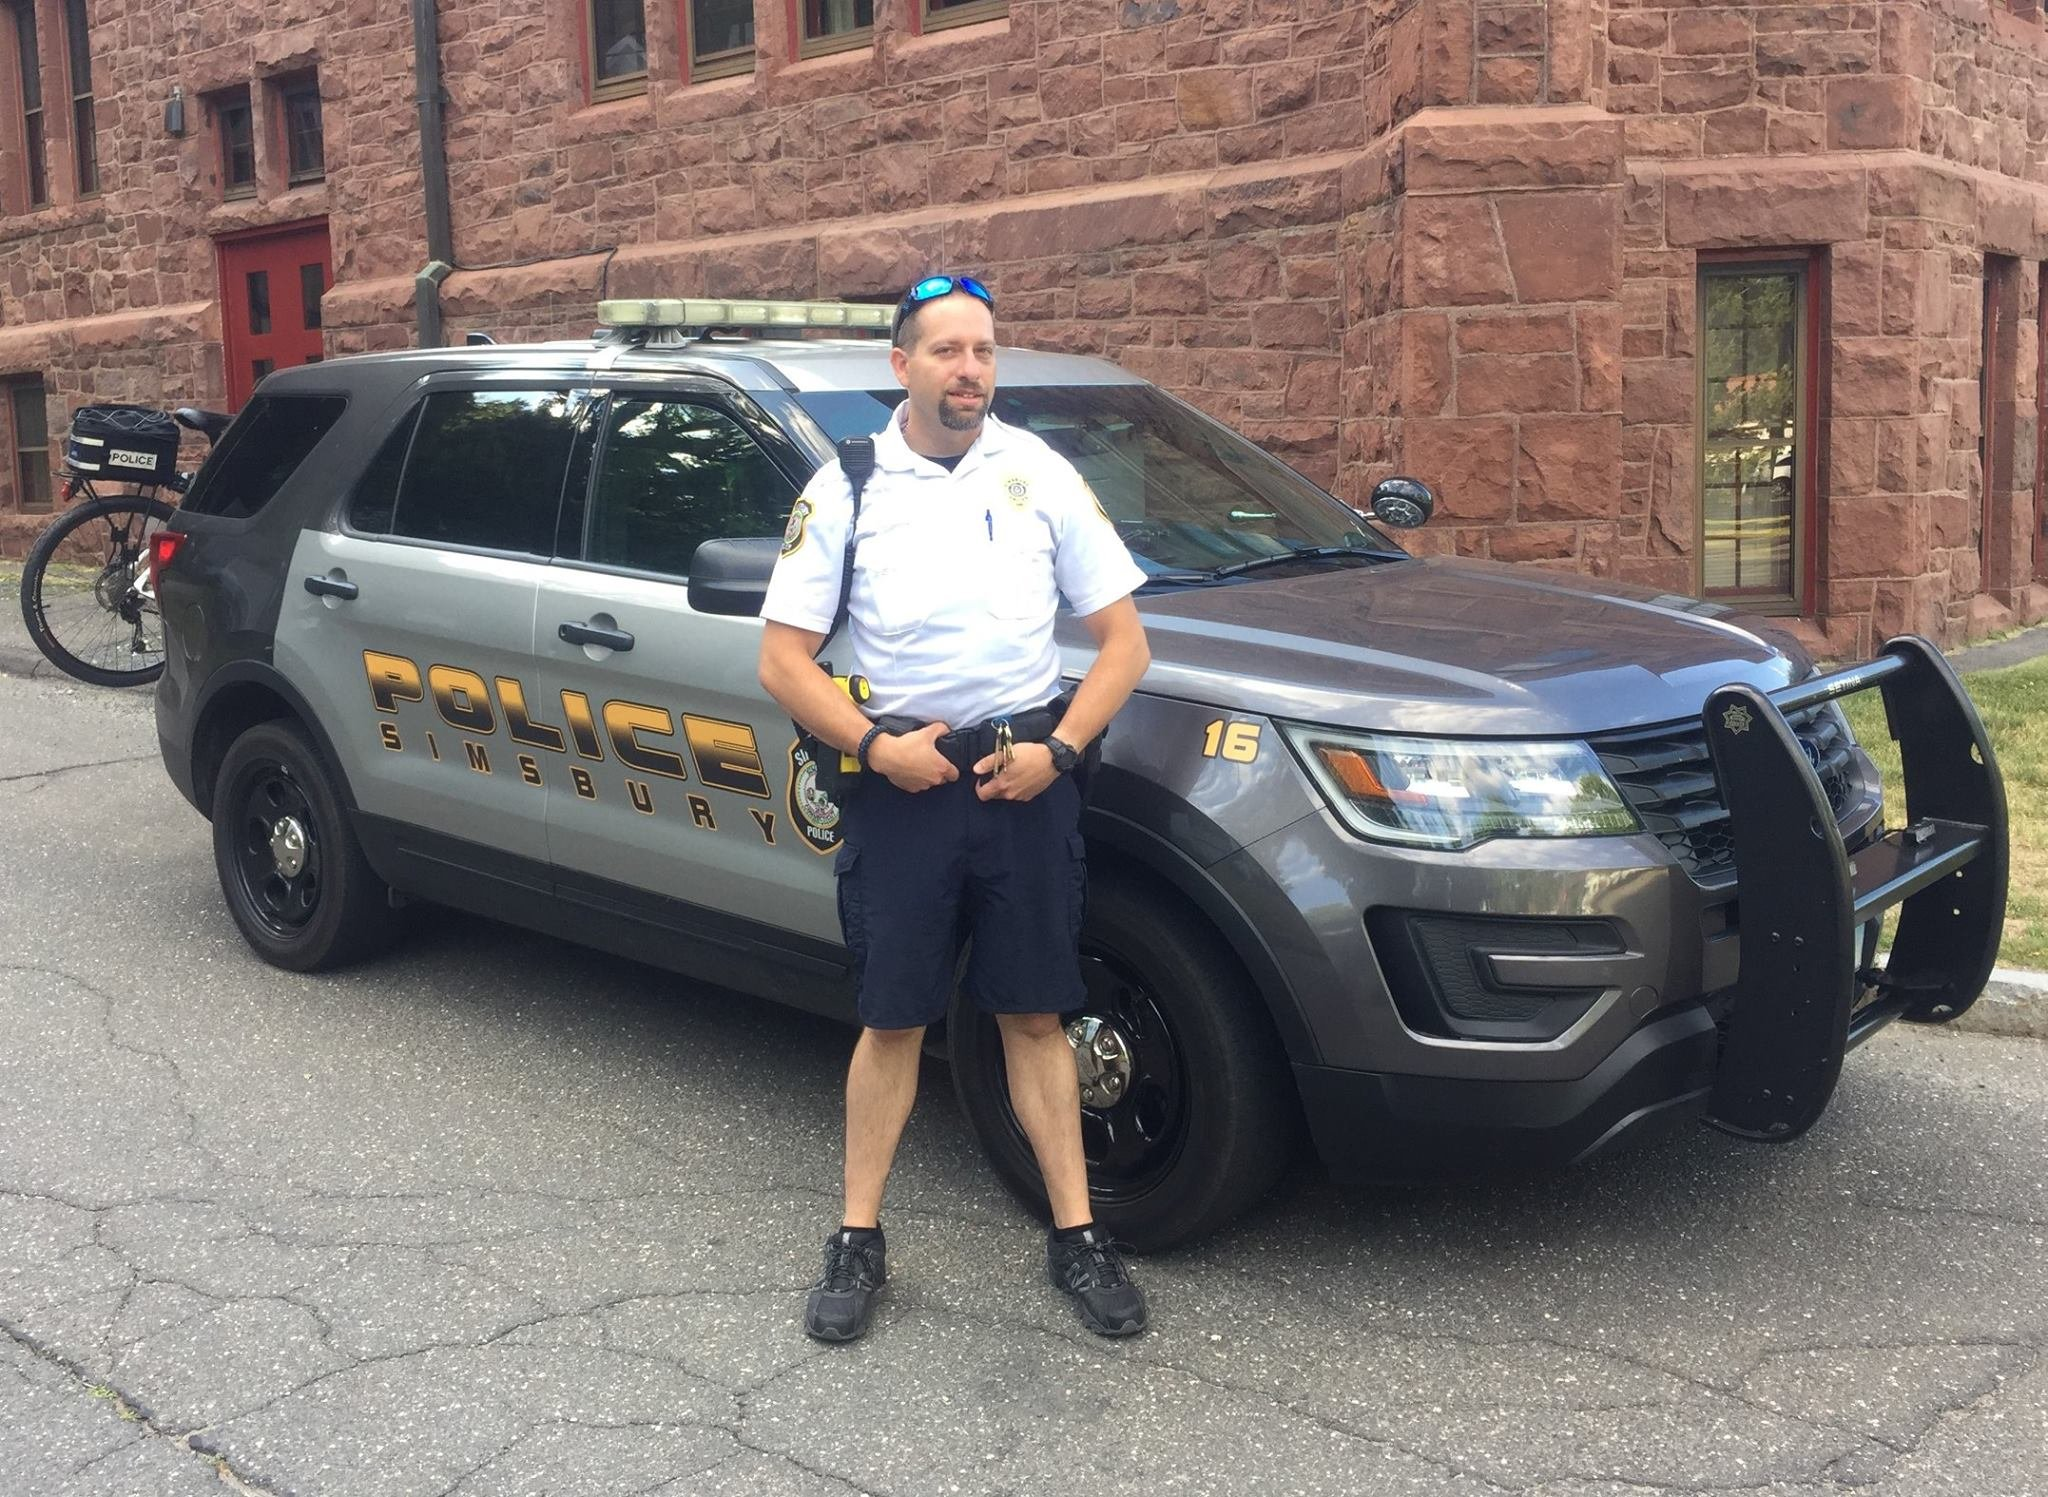 Officer Jamie Ball used a dose of Narcan to save the life of a man who overdosed Friday. (Simsbury Police Dept. Facebook)